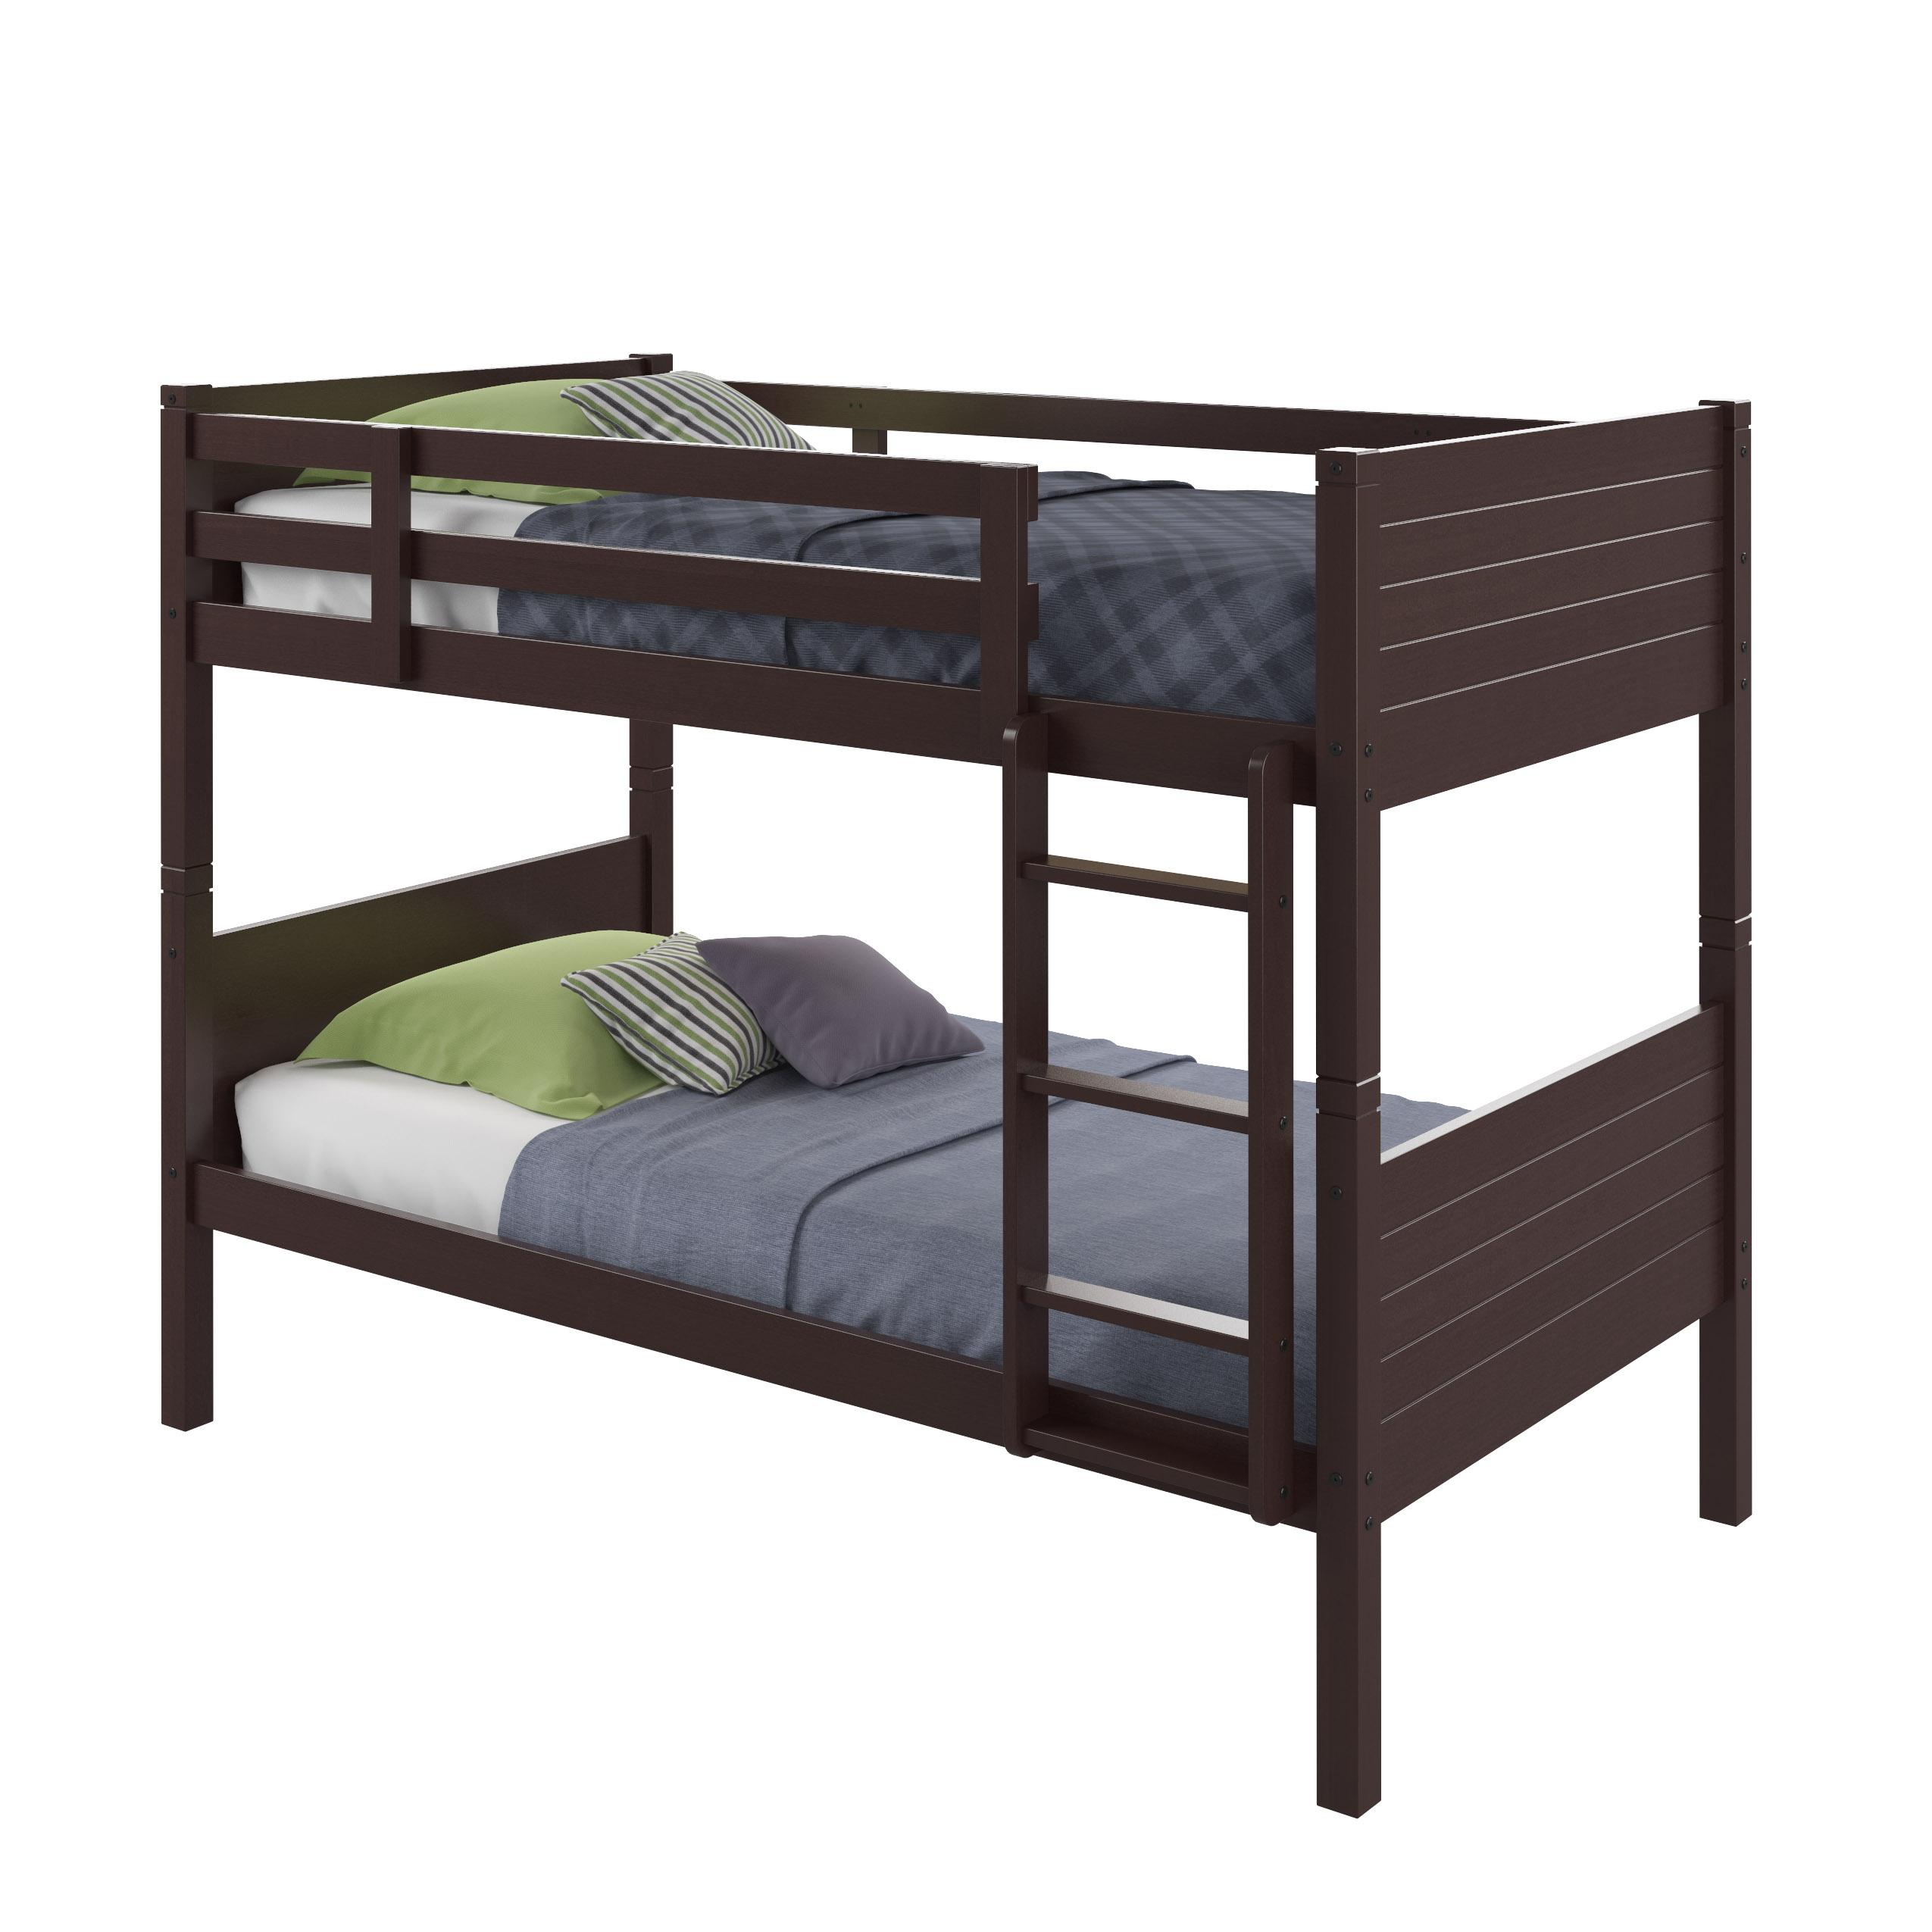 Corliving baf 390 b ashland bunk bed twin for Single bunk bed